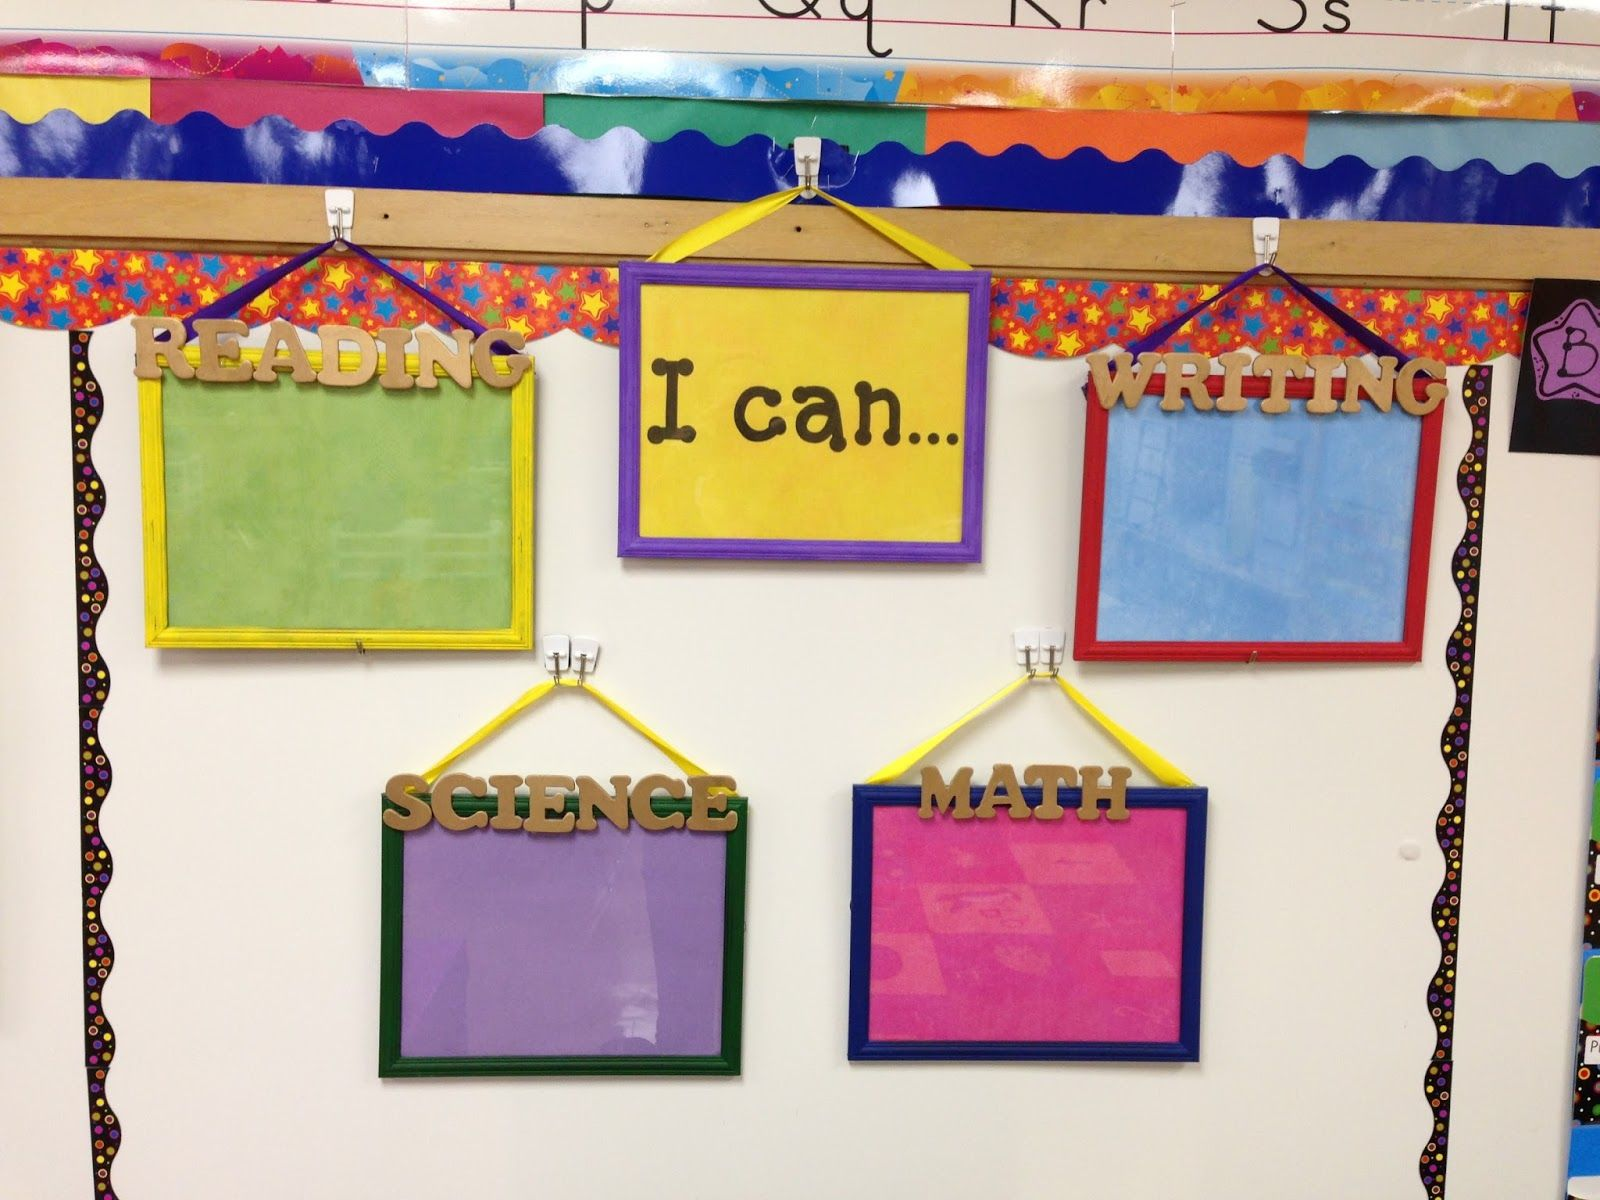 Routines This Example Is A Good Way To Support Learning And Develop Global Competency Daily